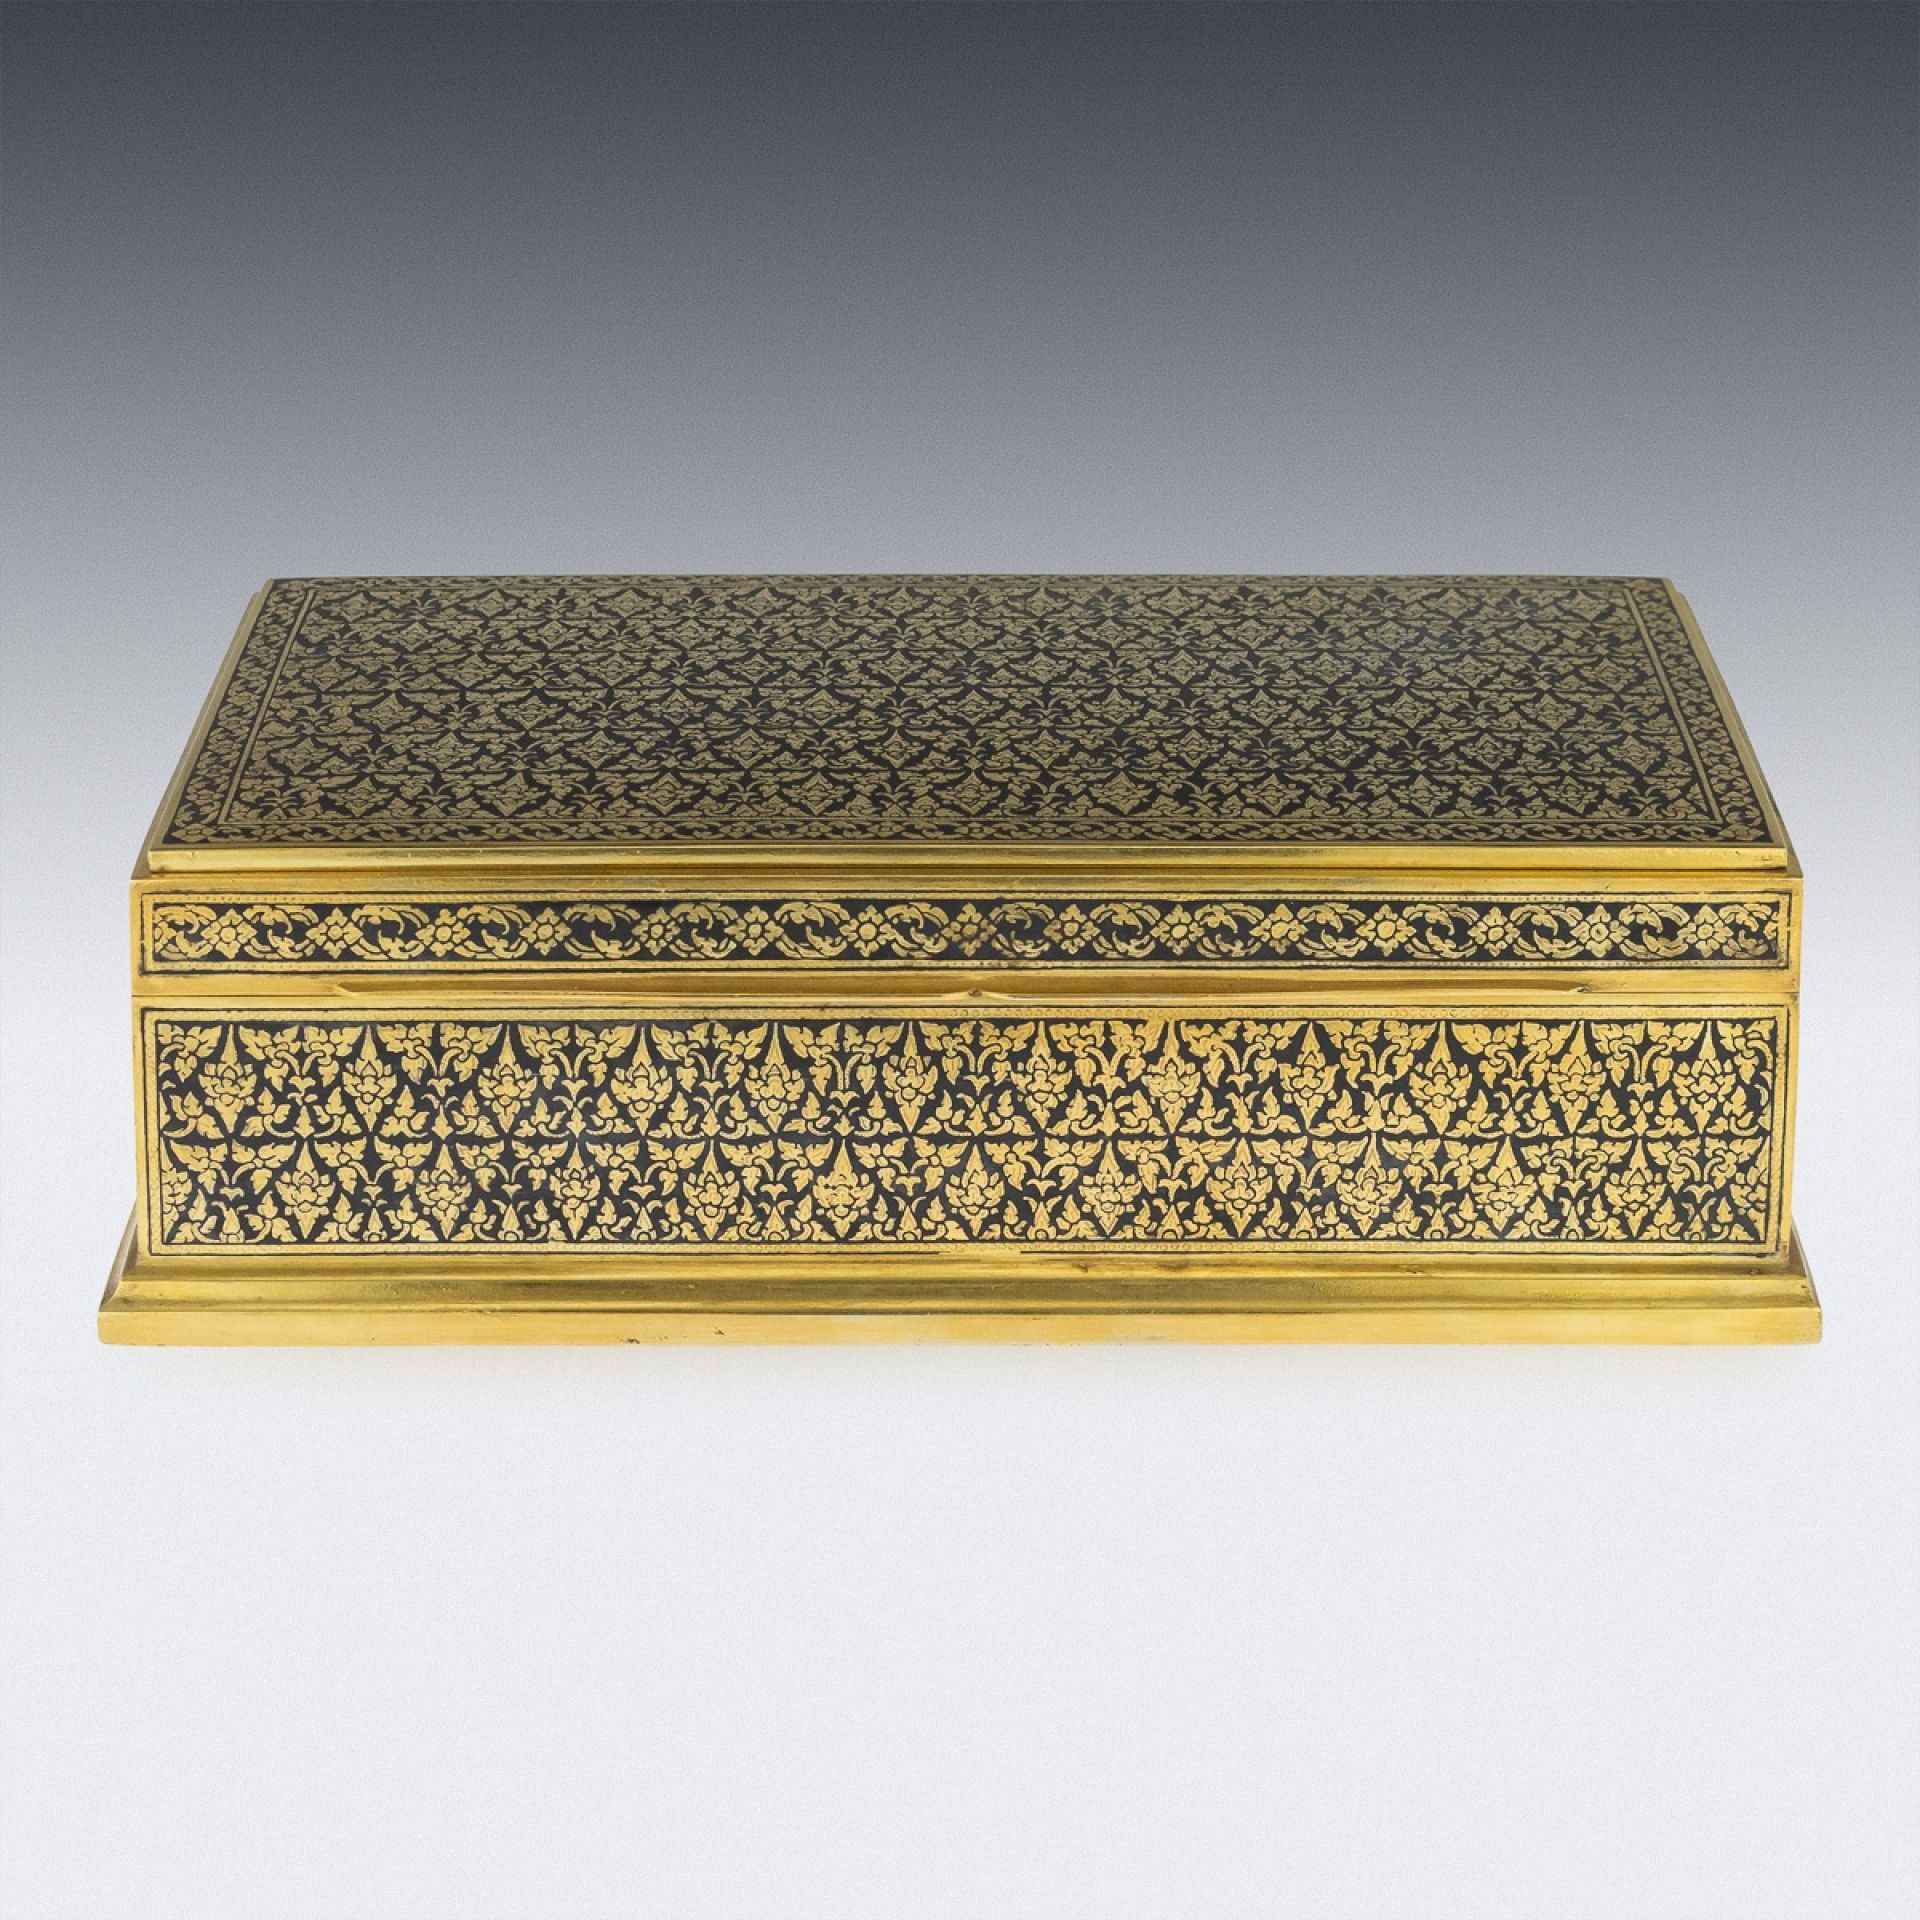 IMPRESSIVE 20THC THAI ROYAL SILVER-GILT NIELLO ENAMEL CIGAR BOX, BANGKOK C.1960